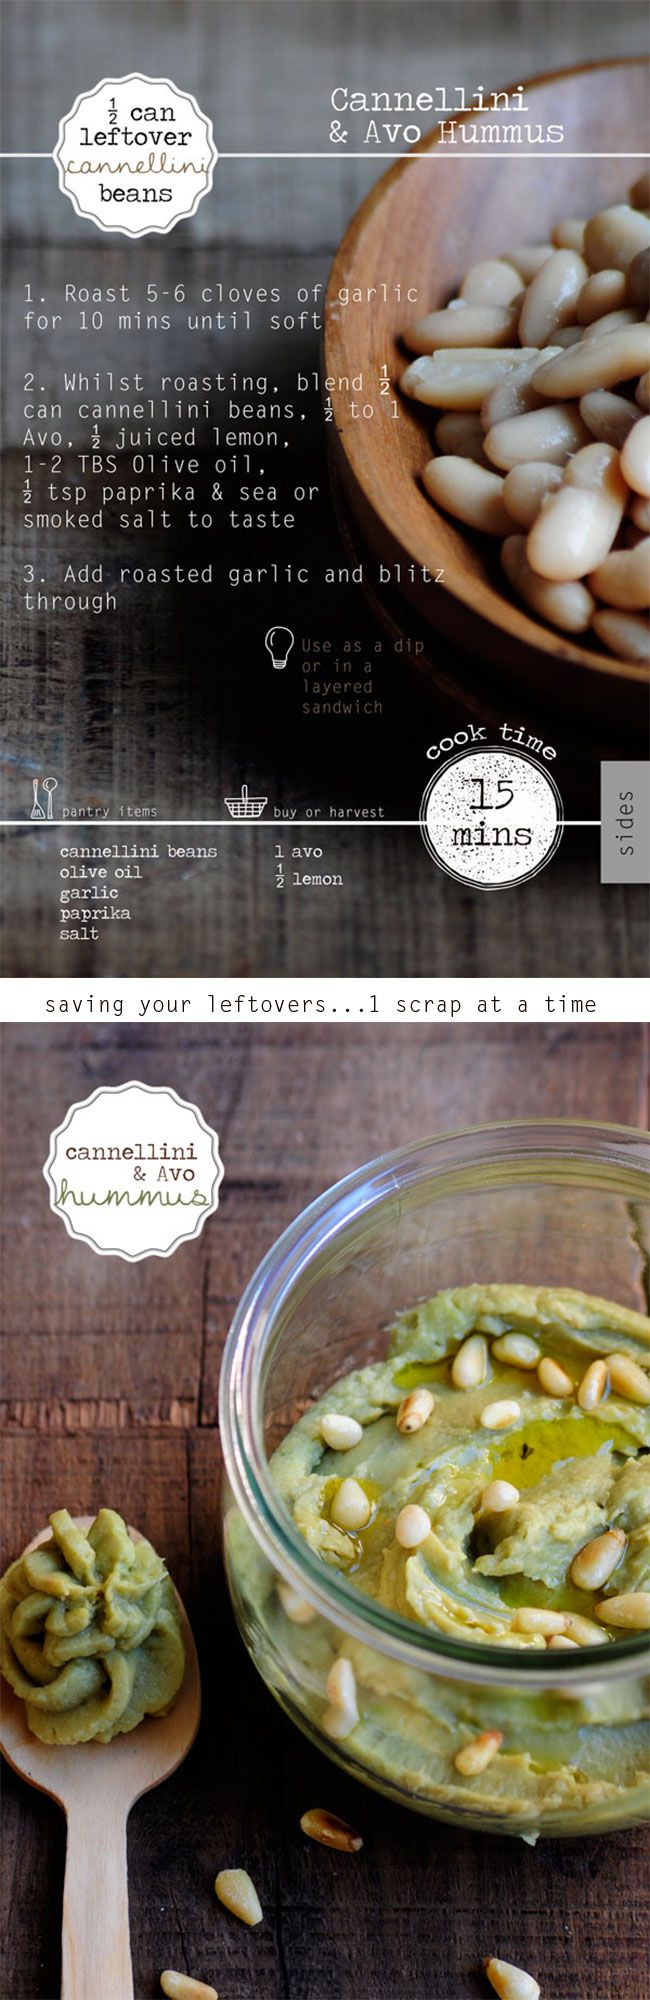 A quick, easy, healthy side for dipping or for the lunchbox whipped up from leftover cannellini beans!